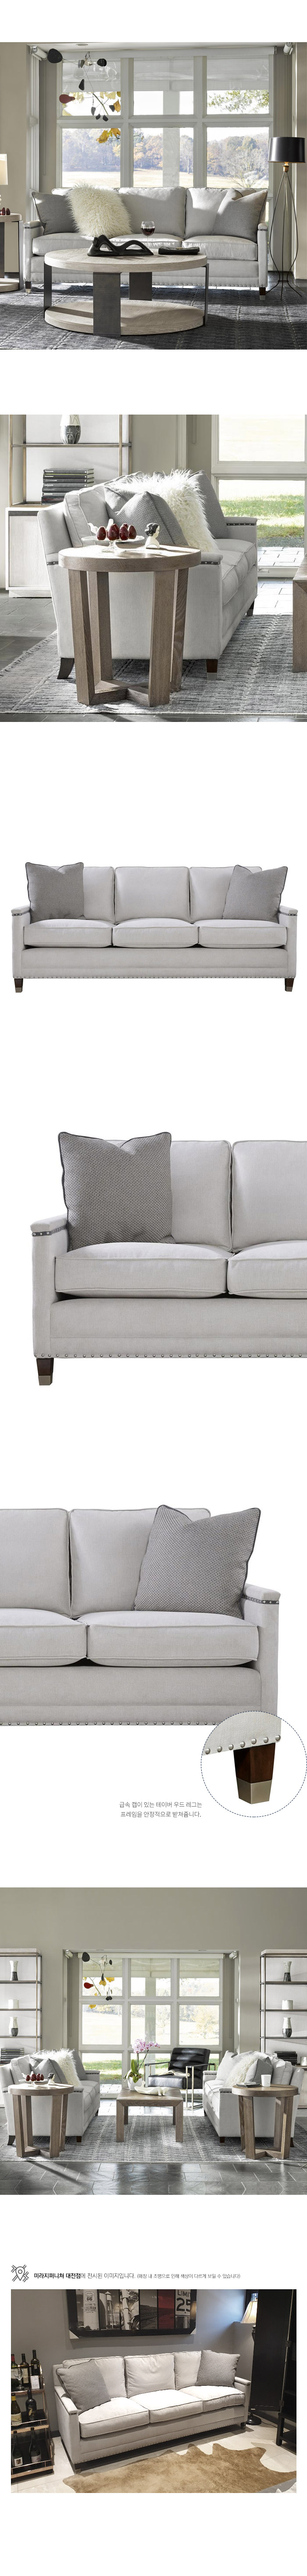 Merrill-Sofa_add-2.jpg